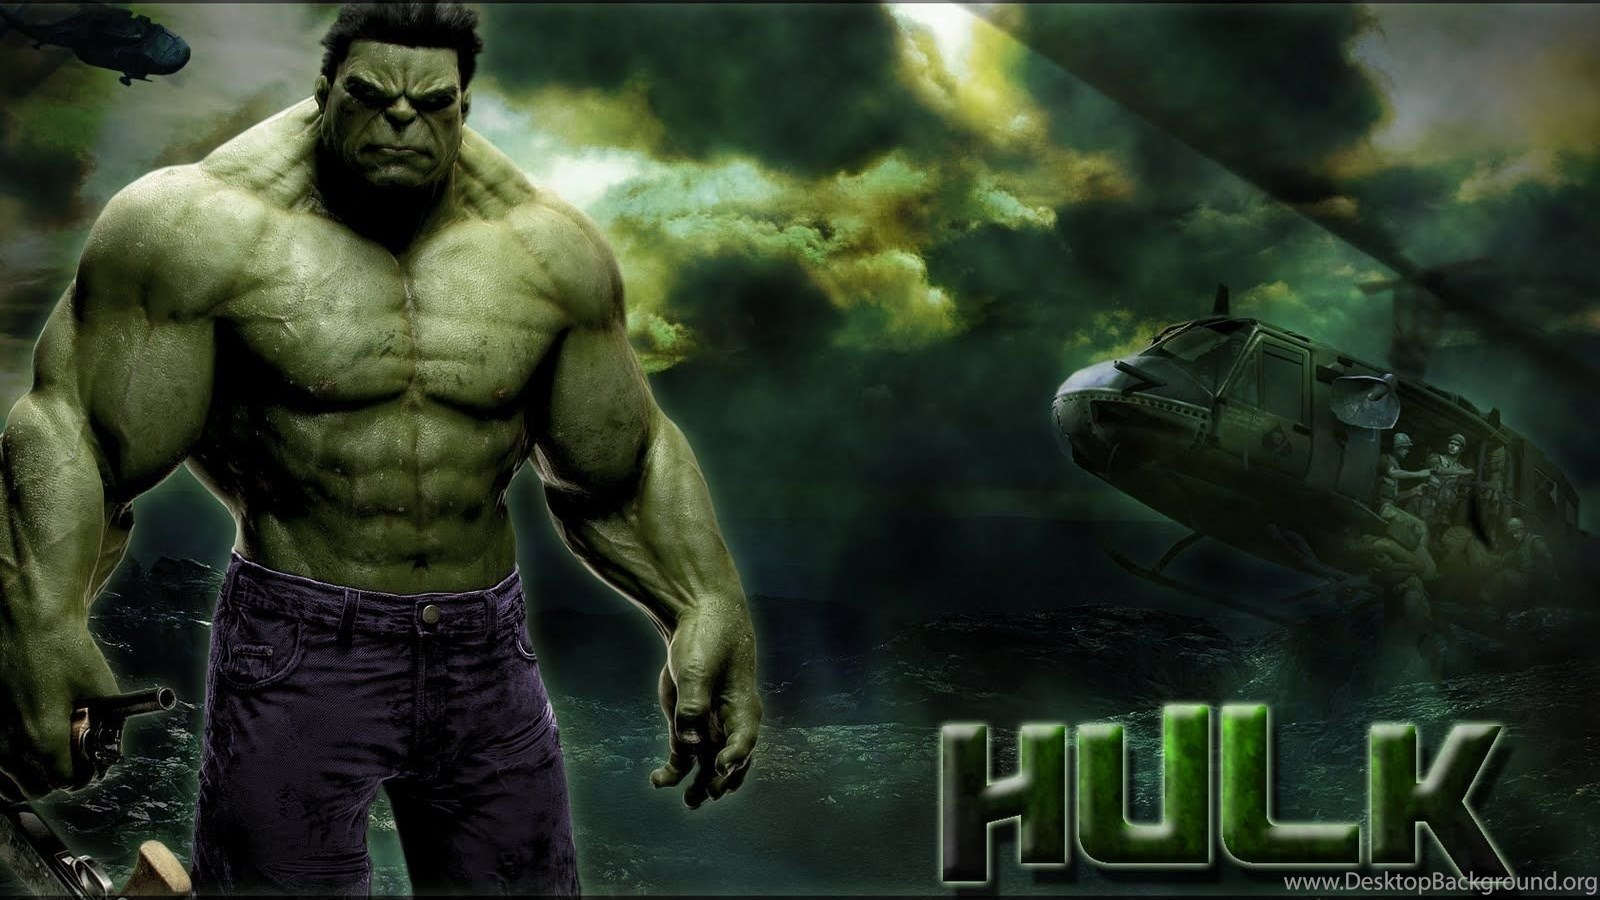 40 incredible hulk wallpapers for desktop desktop background